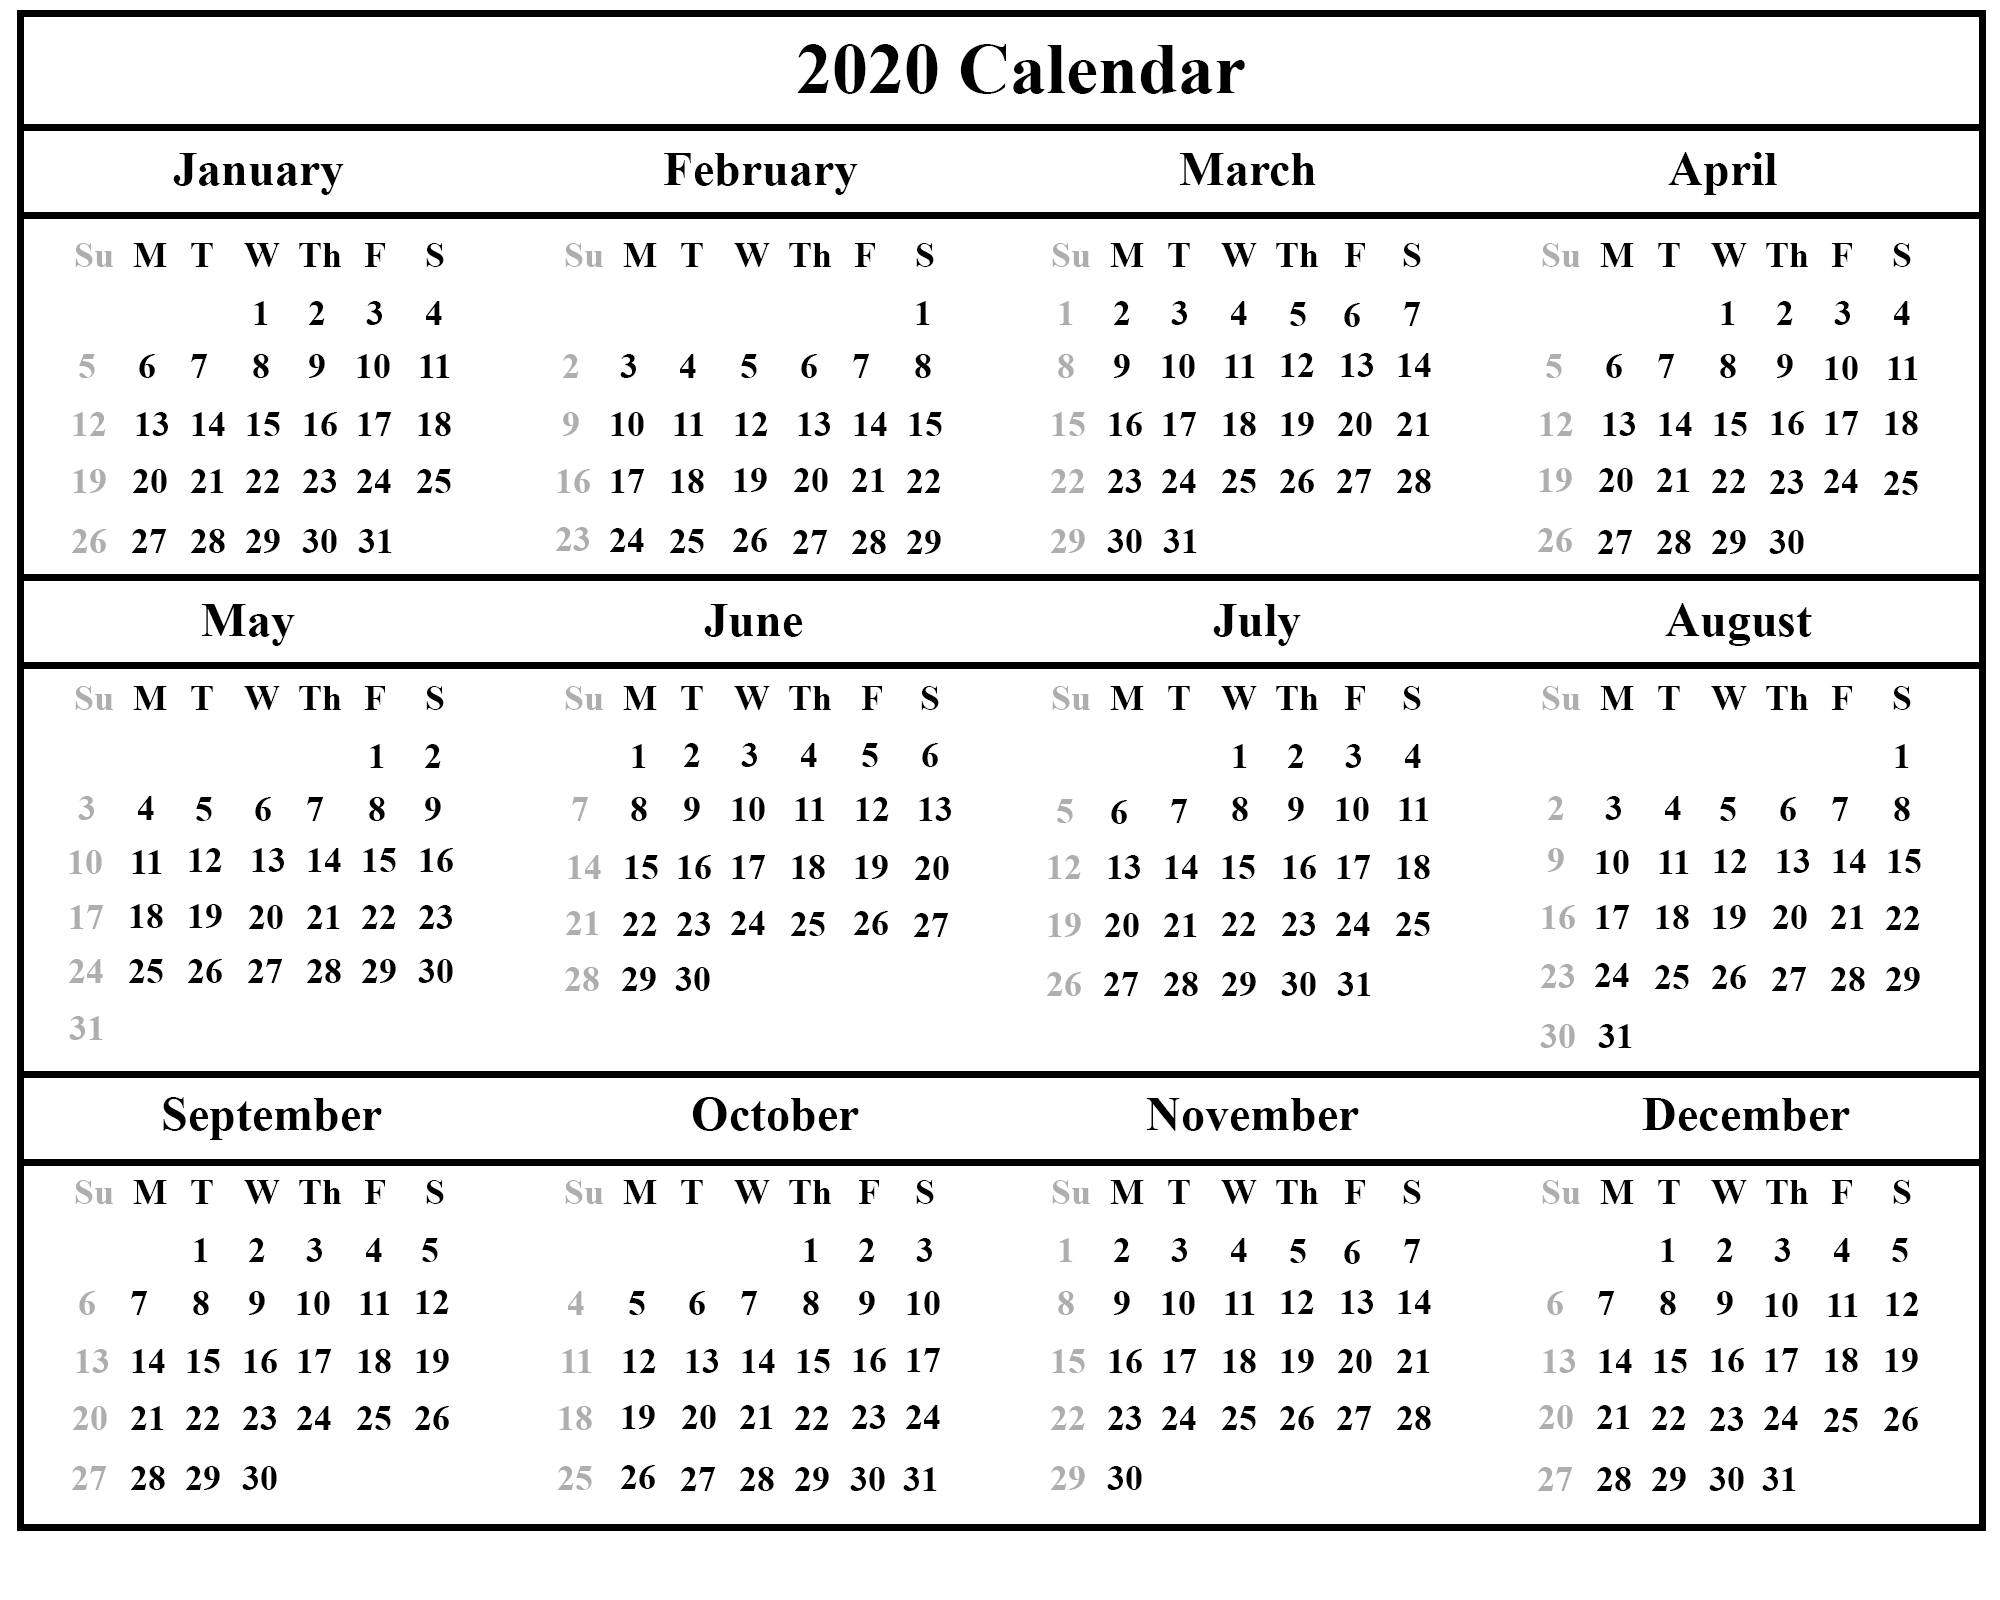 graphic relating to Free Printable 2020 Calendar named Printable Every year Calendar 2020 Template With Vacations [PDF